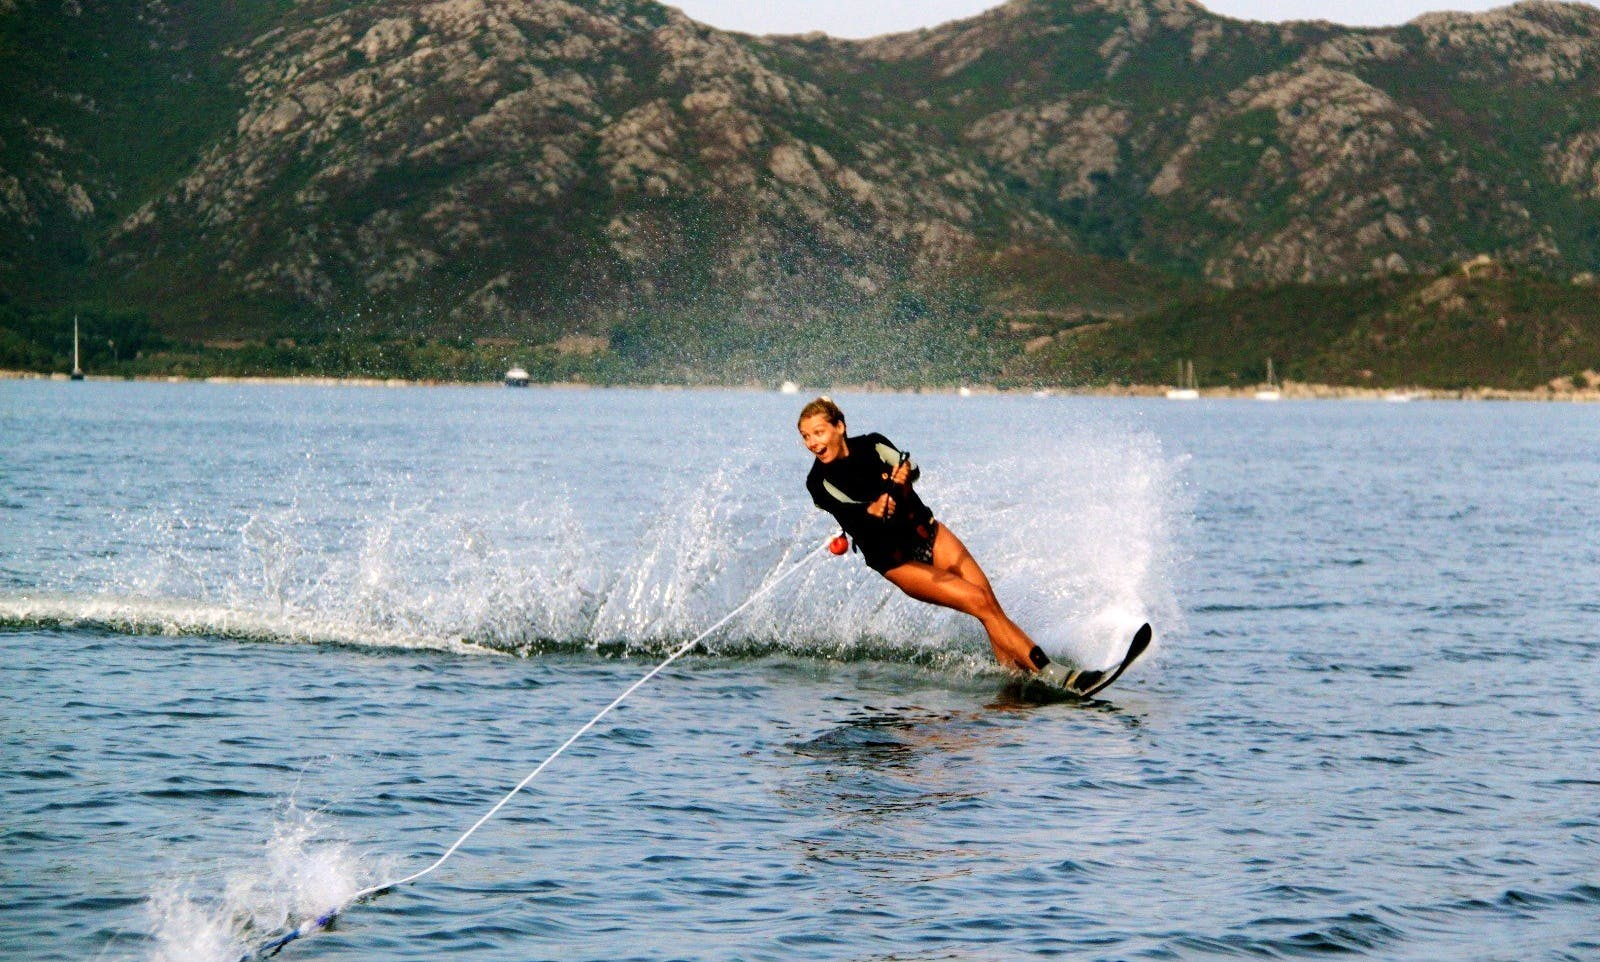 Ride The Wake In Saint-Tropez, France